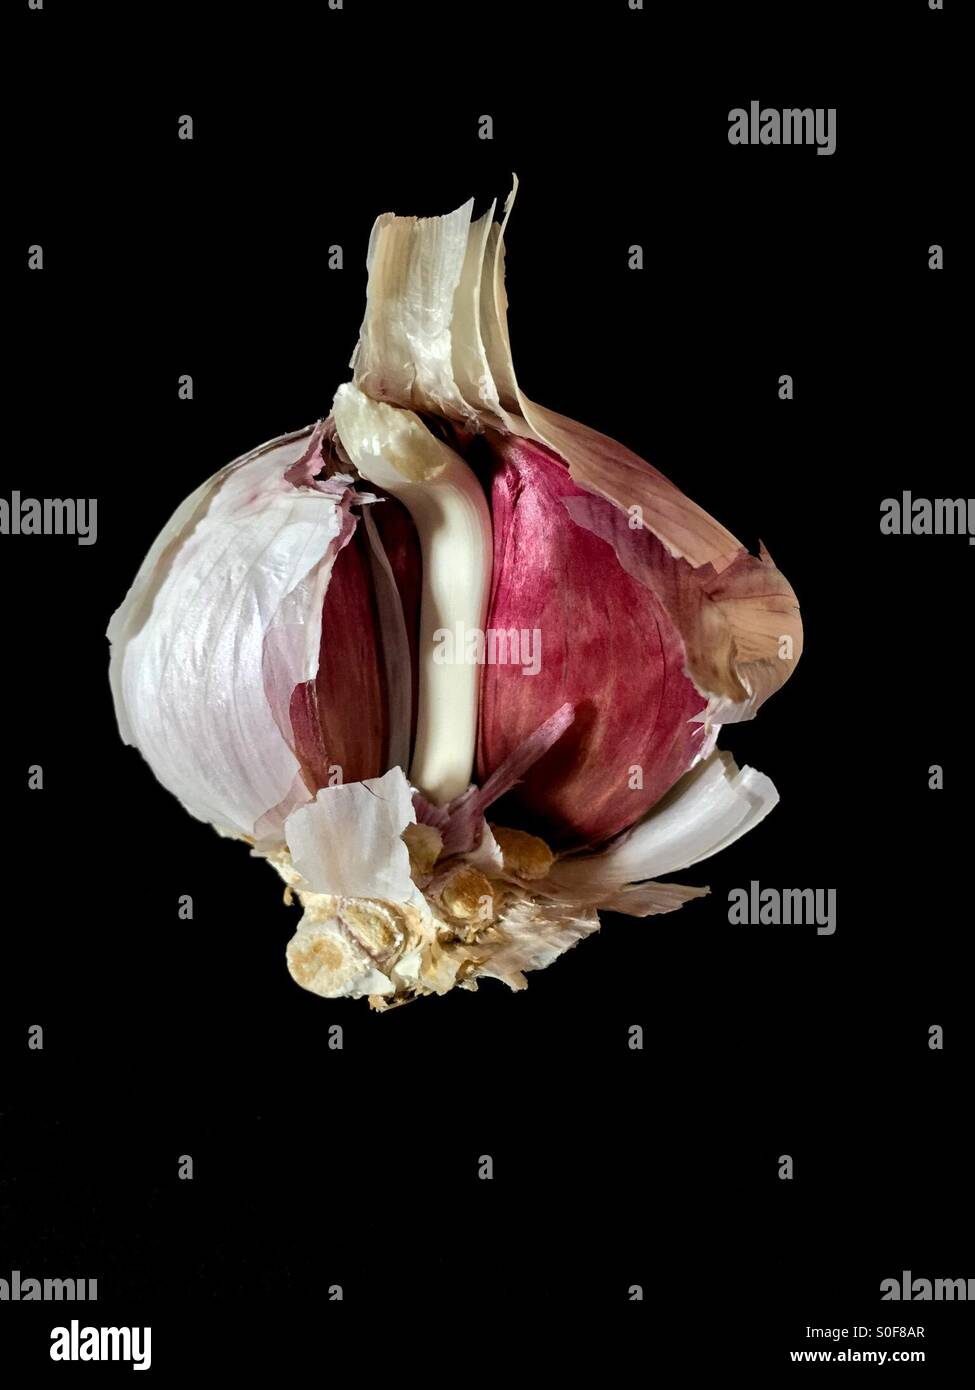 A Opened Garlic Bulb - Stock Image